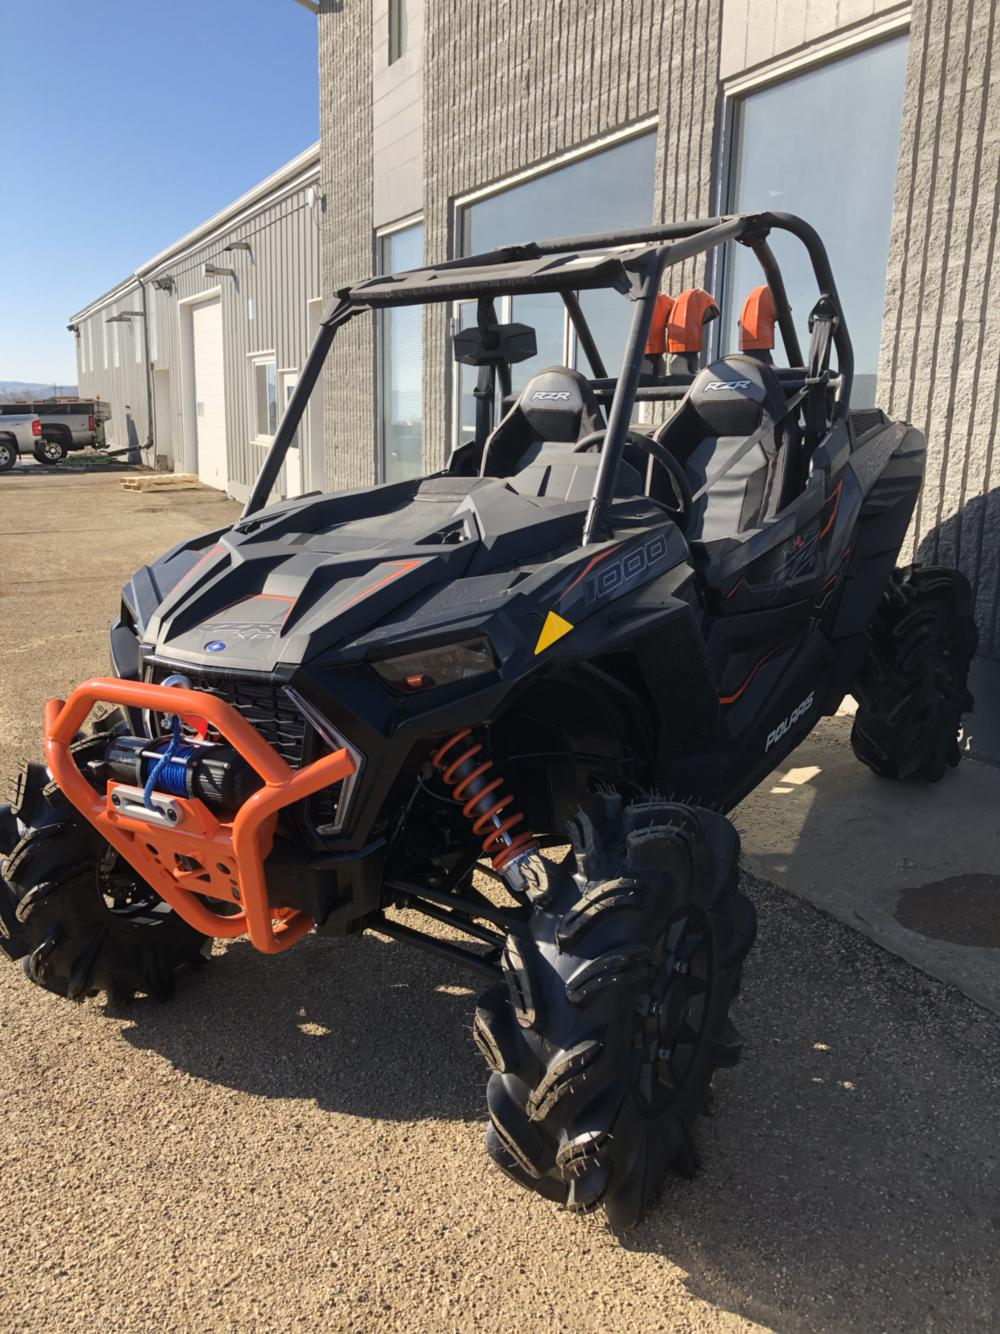 medium resolution of 2019 polaris industries rzr xp 1000 high lifter stealth black